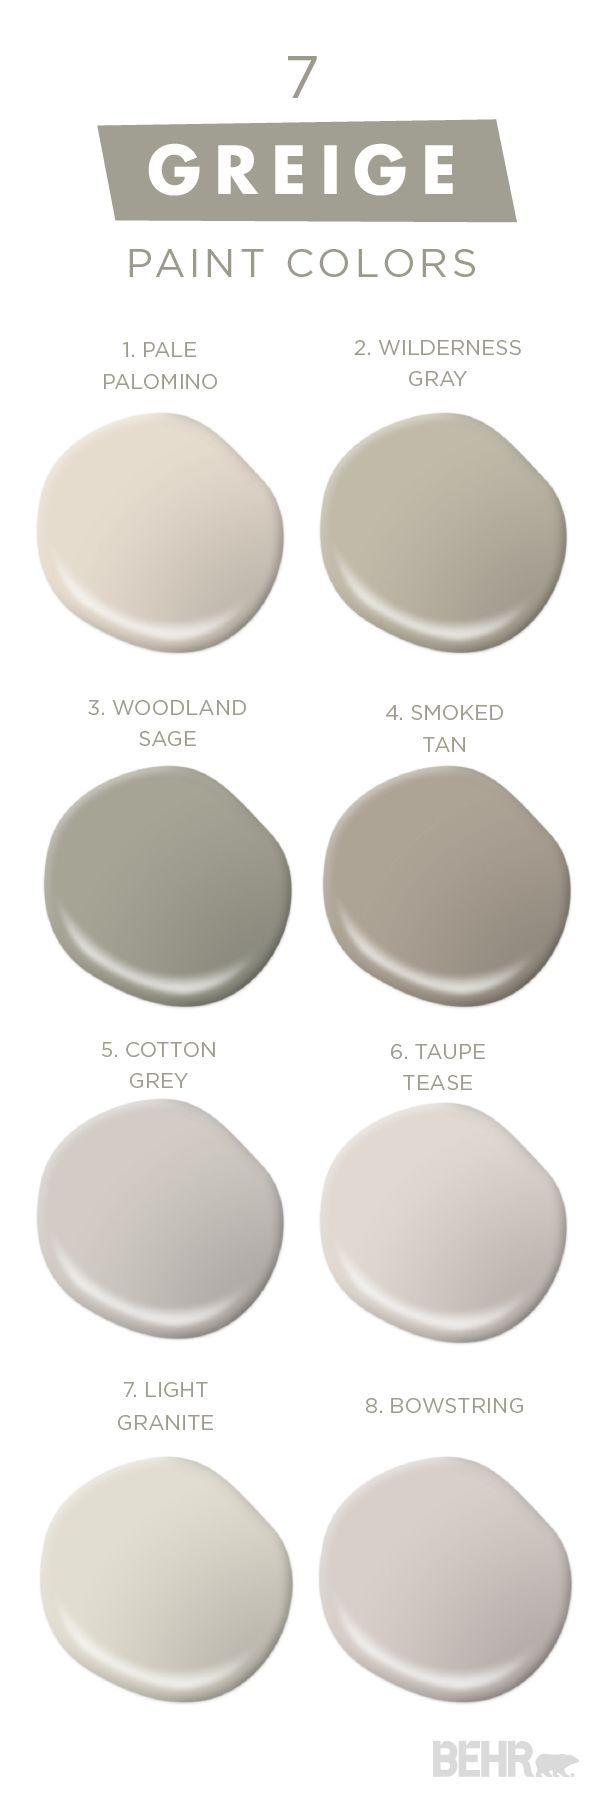 17 Best Images About Paint Possibilities On Pinterest Worldly Gray Taupe And Paint Colors